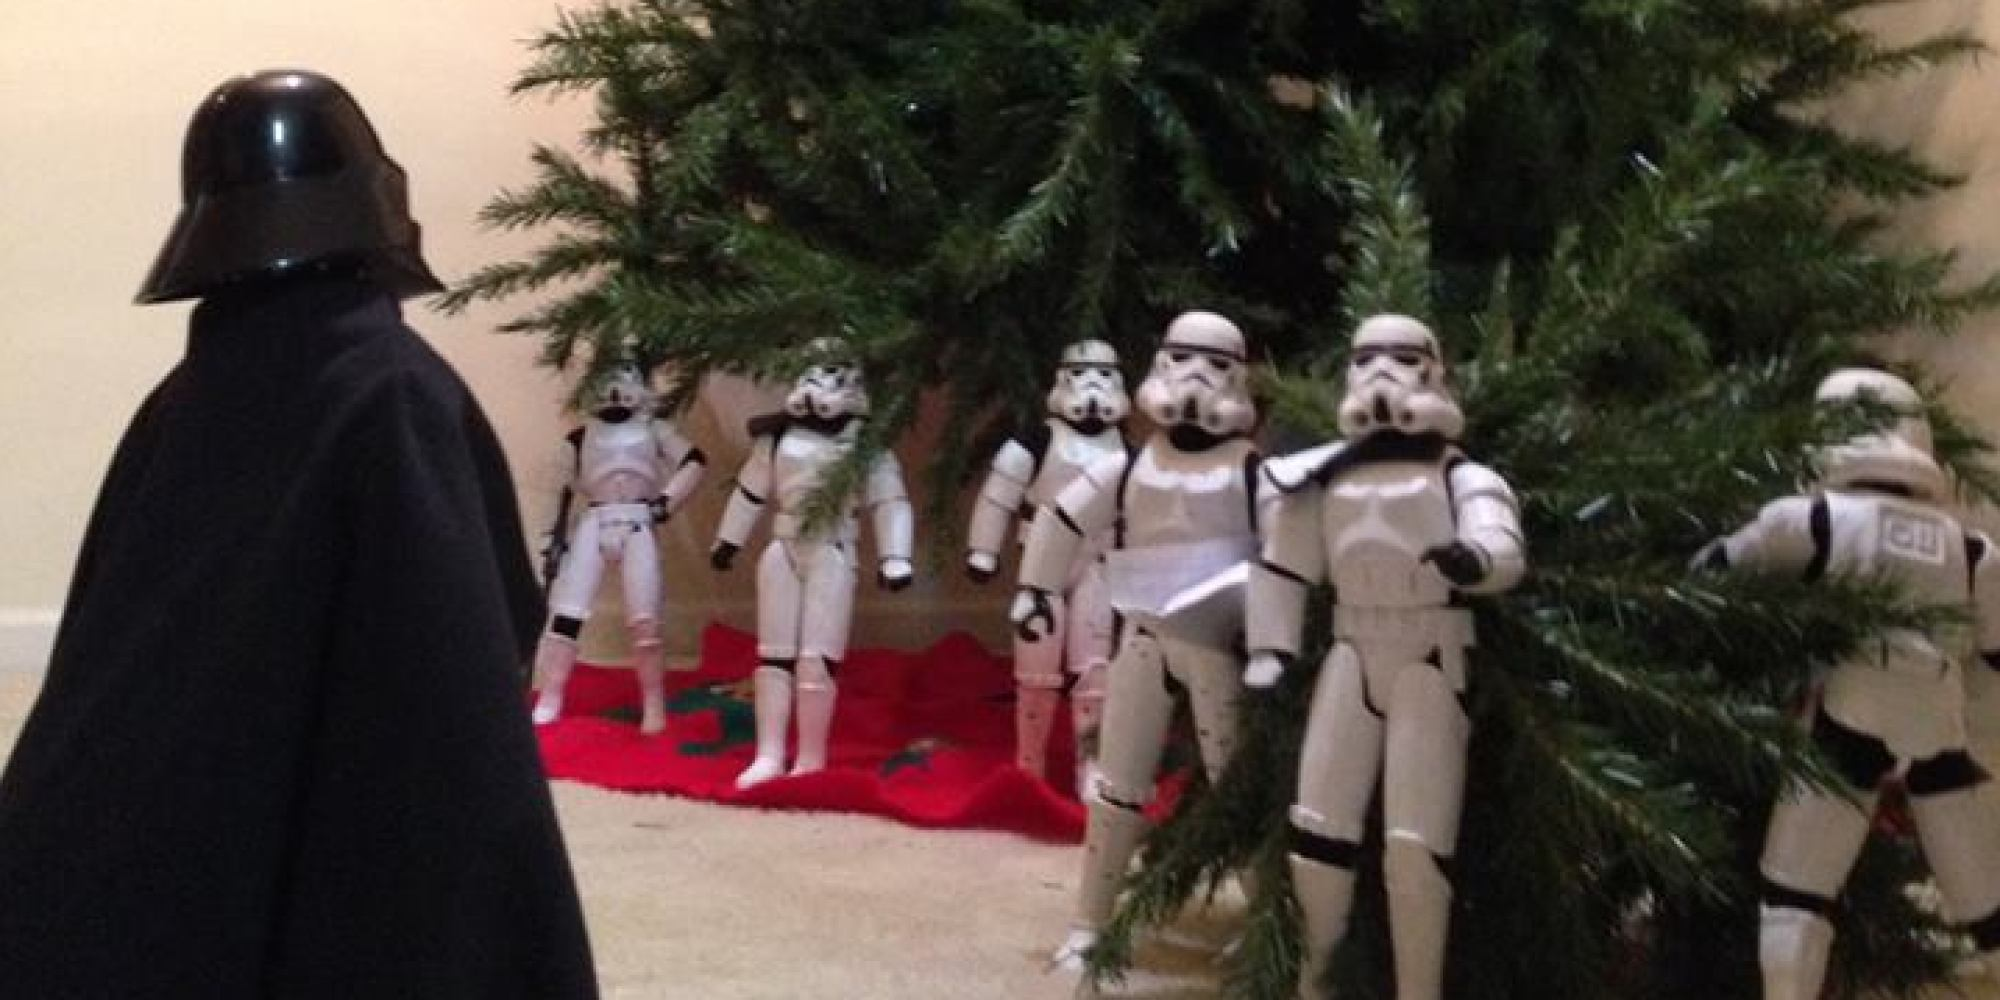 Funny Photos of Star Wars Stormtroopers Putting Up A Christmas ...